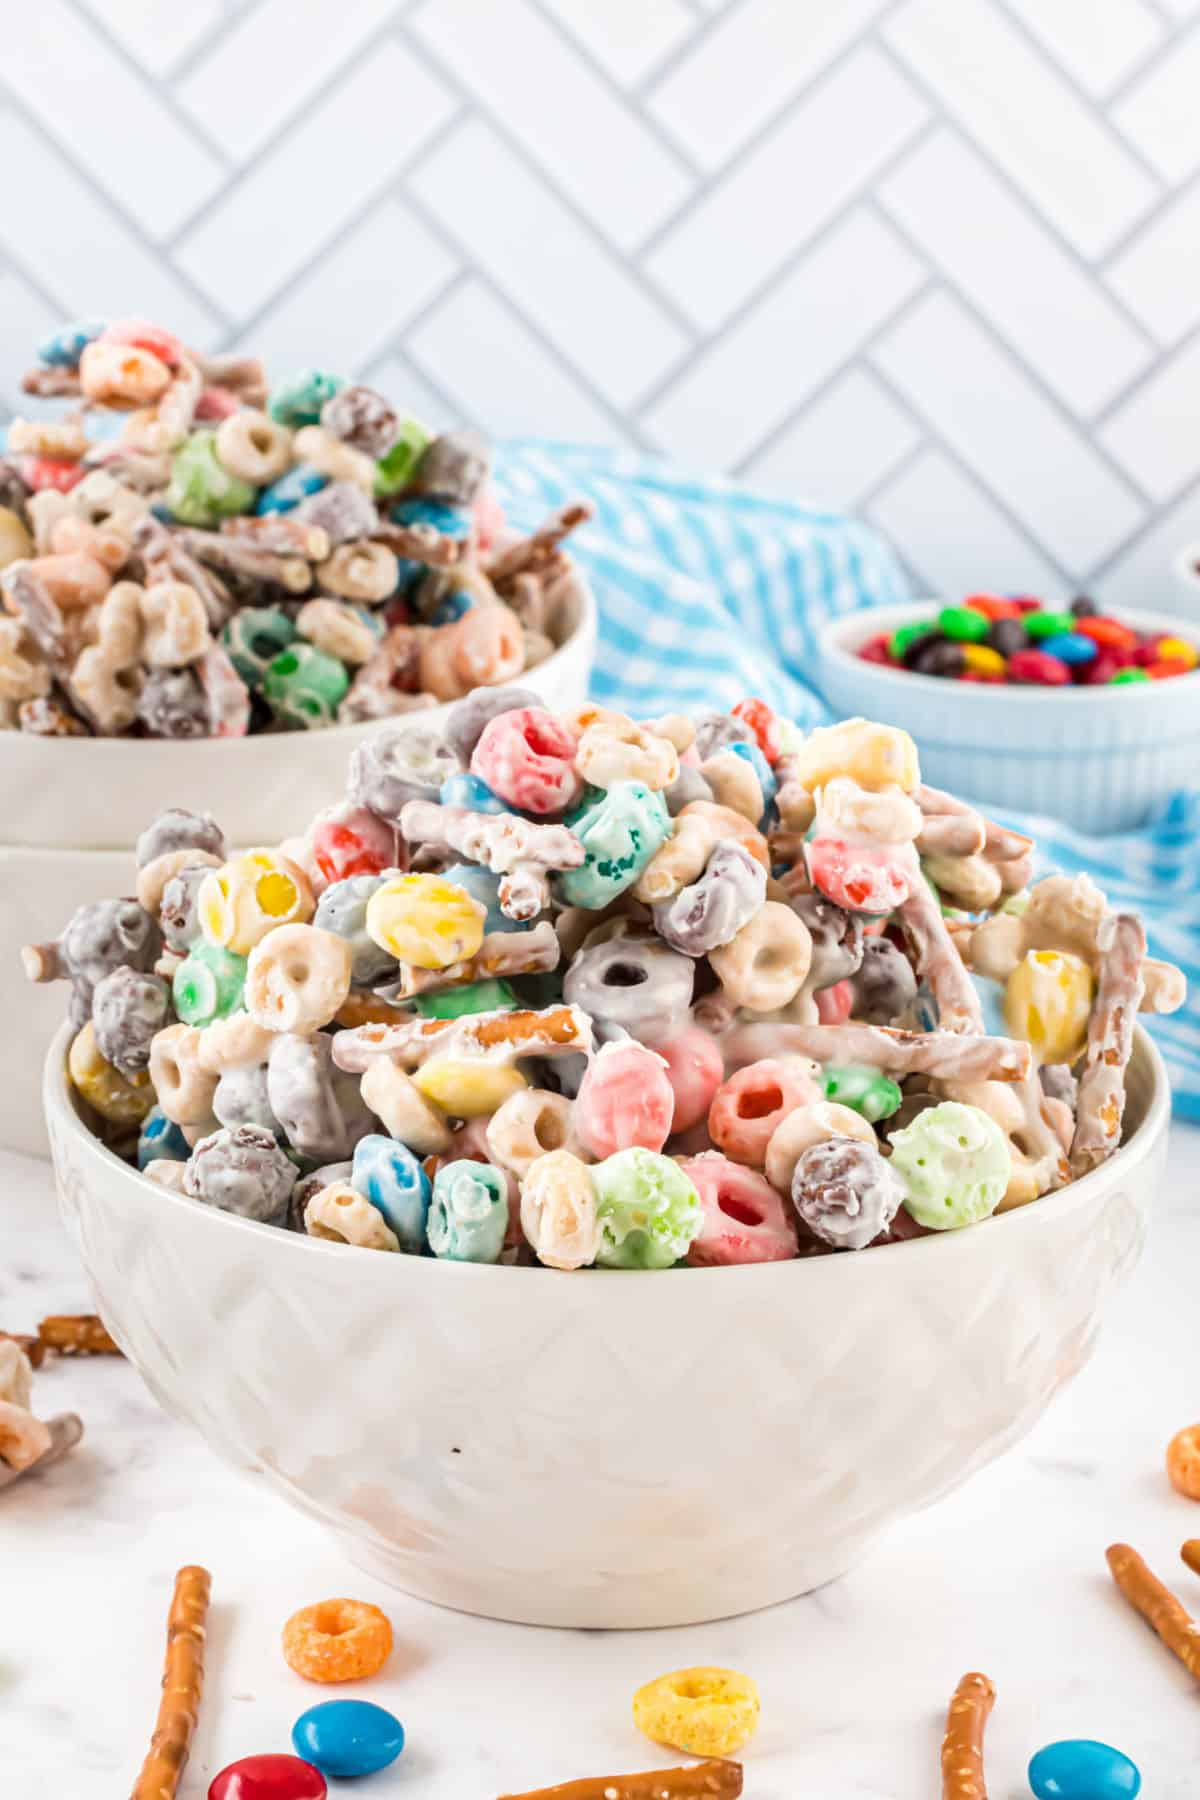 Easy candy mix made with cereal, white chocolate, and m&ms in a white bowl.